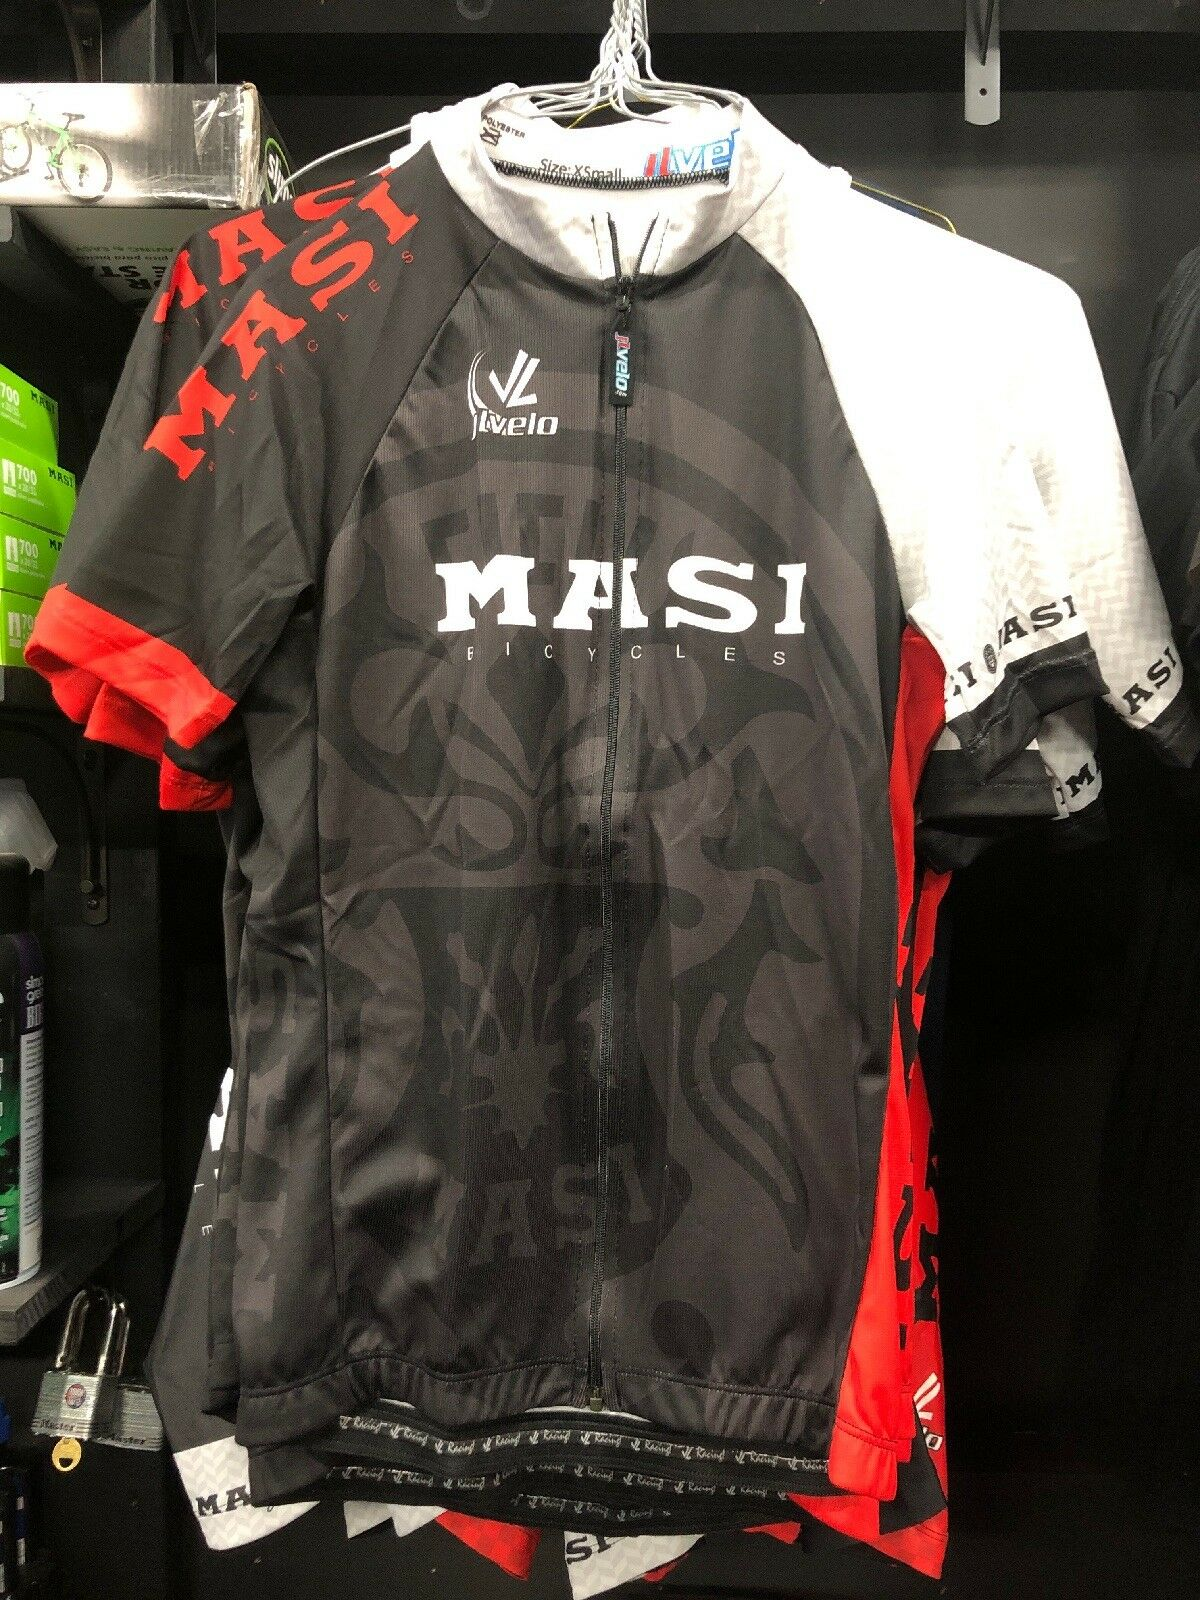 Masi Racing  Jersey For Cycling Road Bike Small  60% off